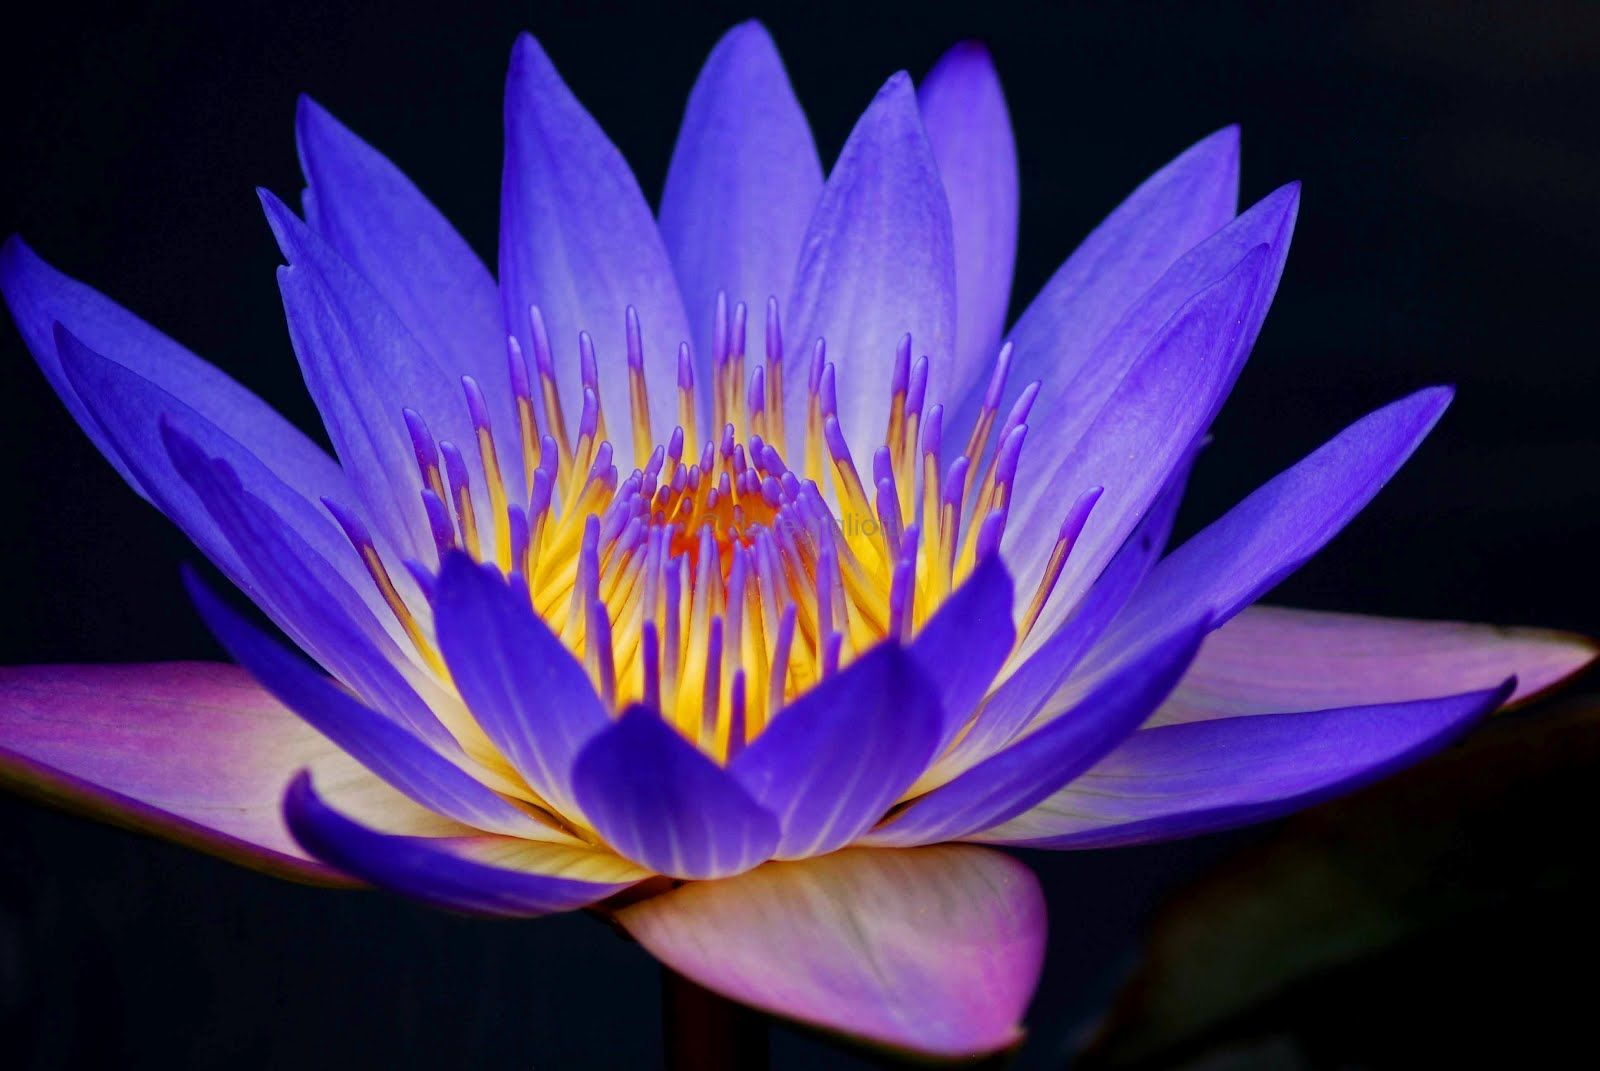 Pin By Brenda Arlia On Beauty Blossoming Pinterest Blue Lotus